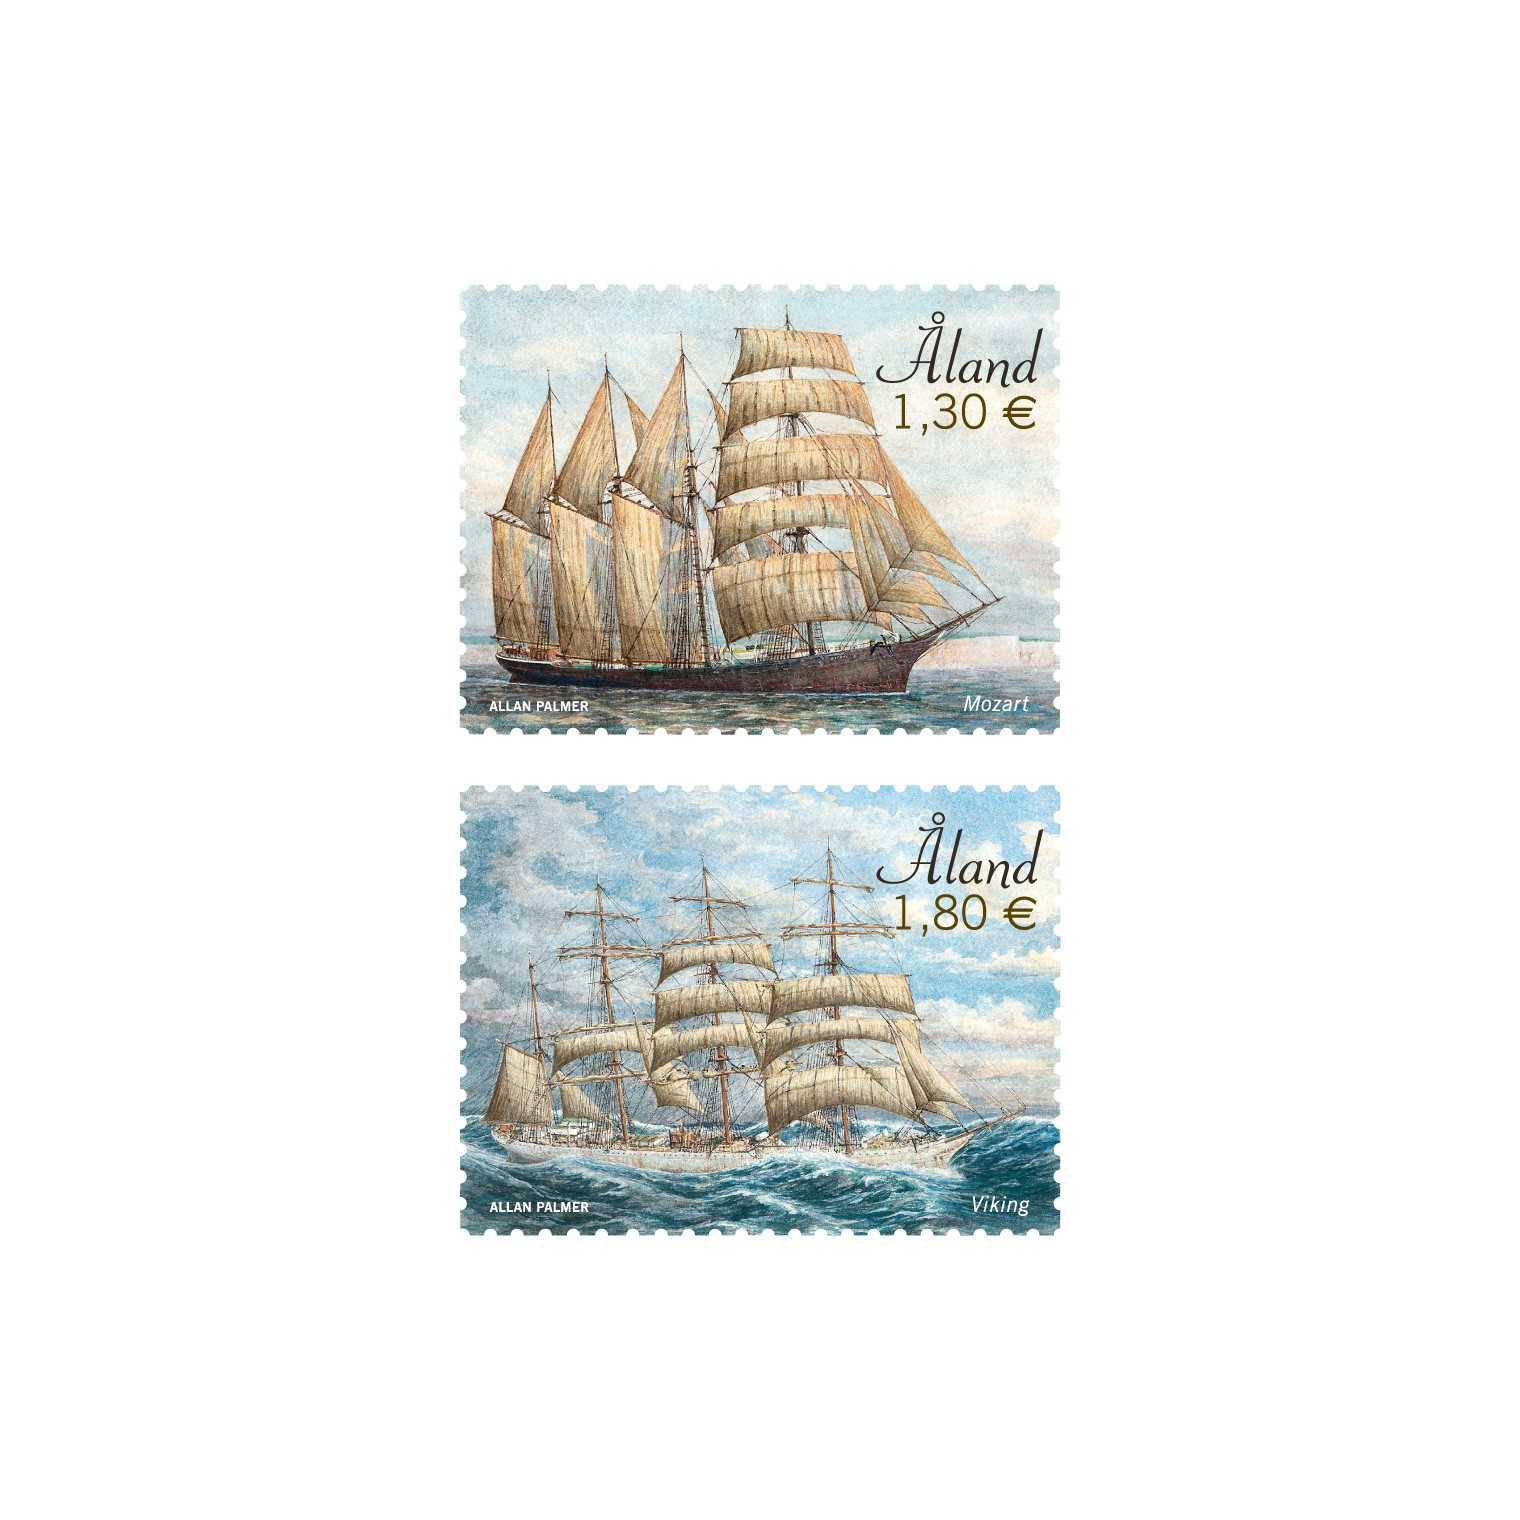 sailing ships Mozart and Viking